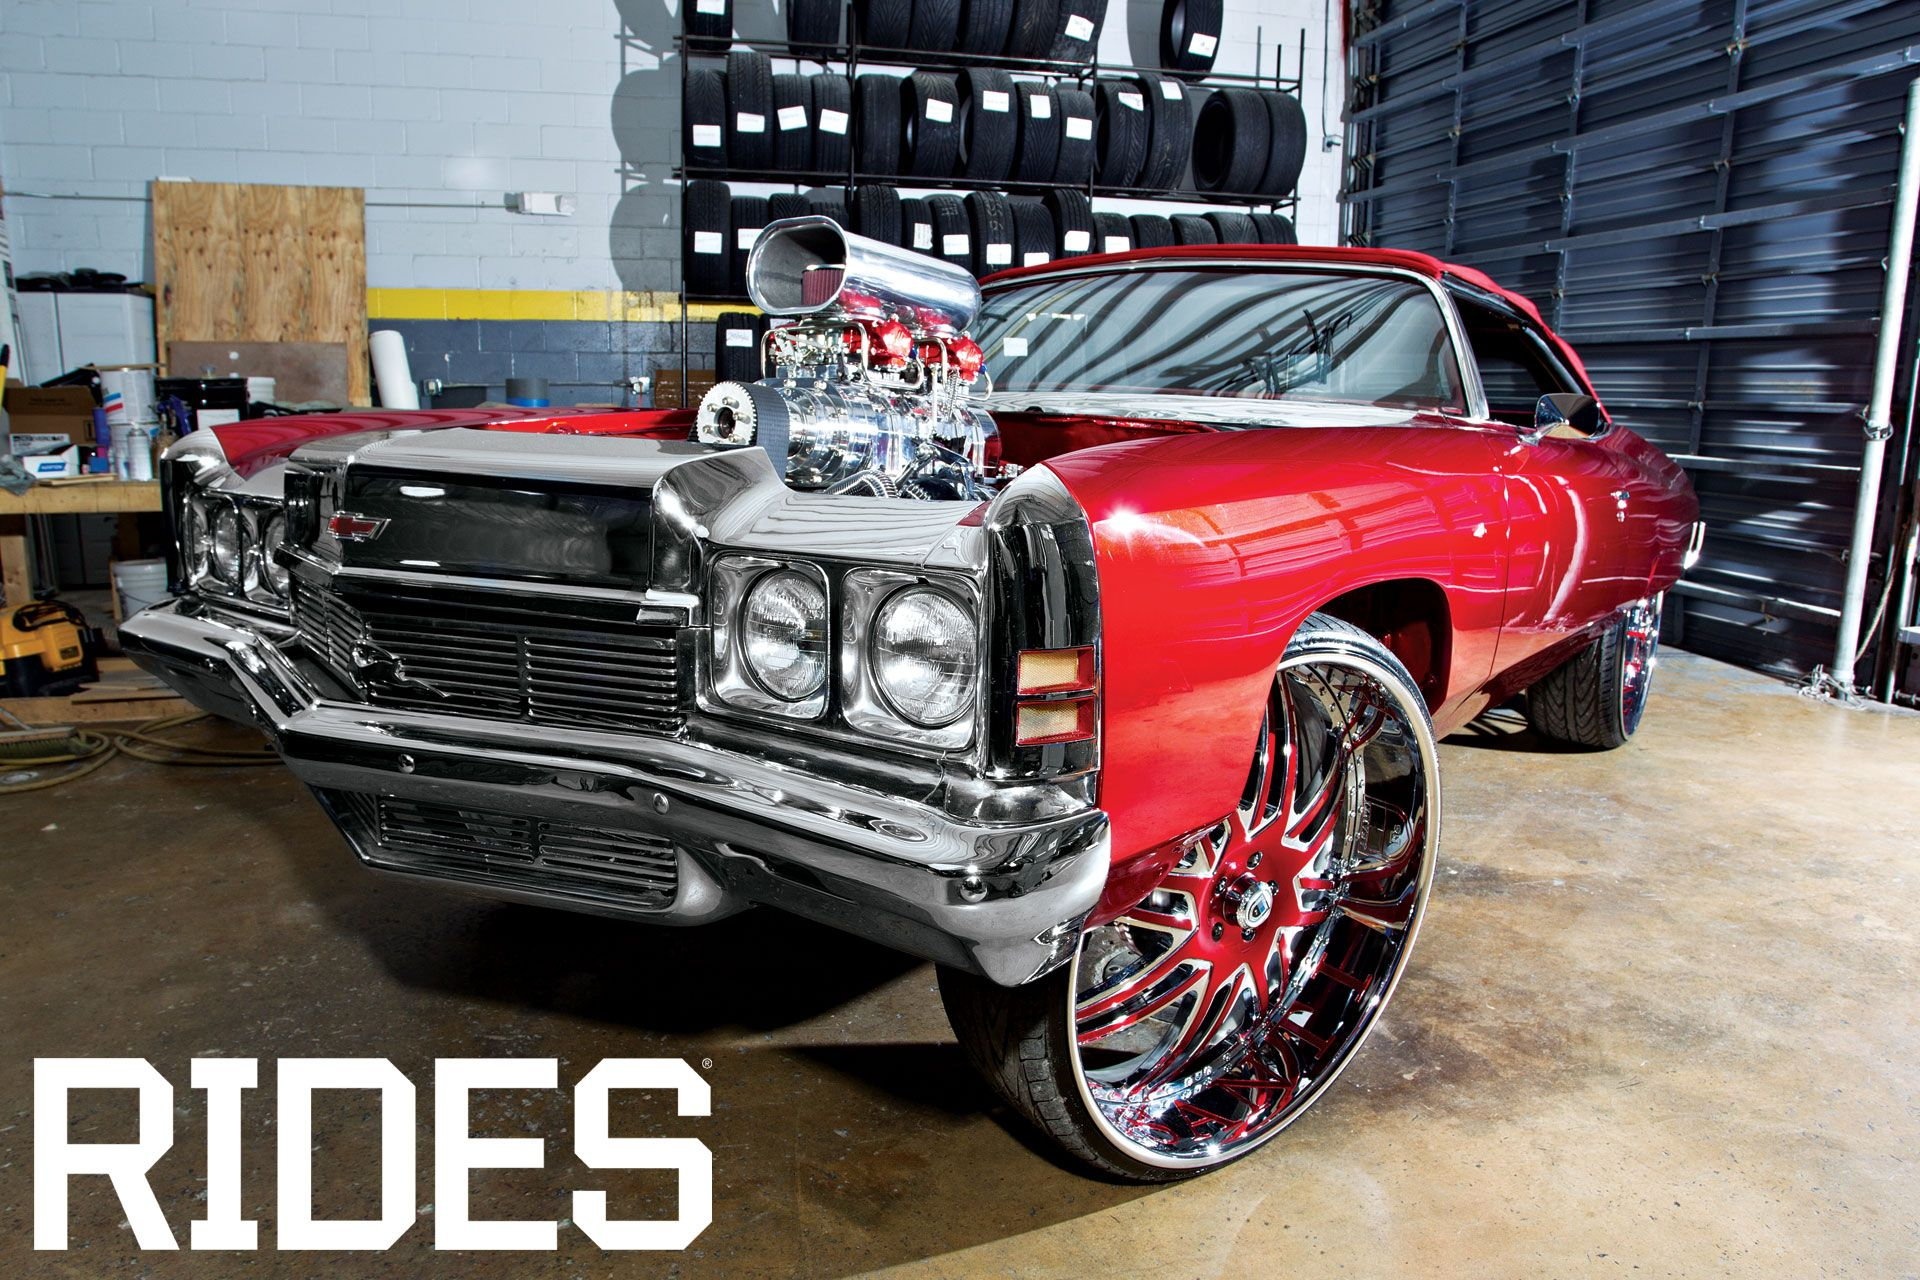 Big Wheels 28 Cars Rides Cars Donk Chevy Chevrolet